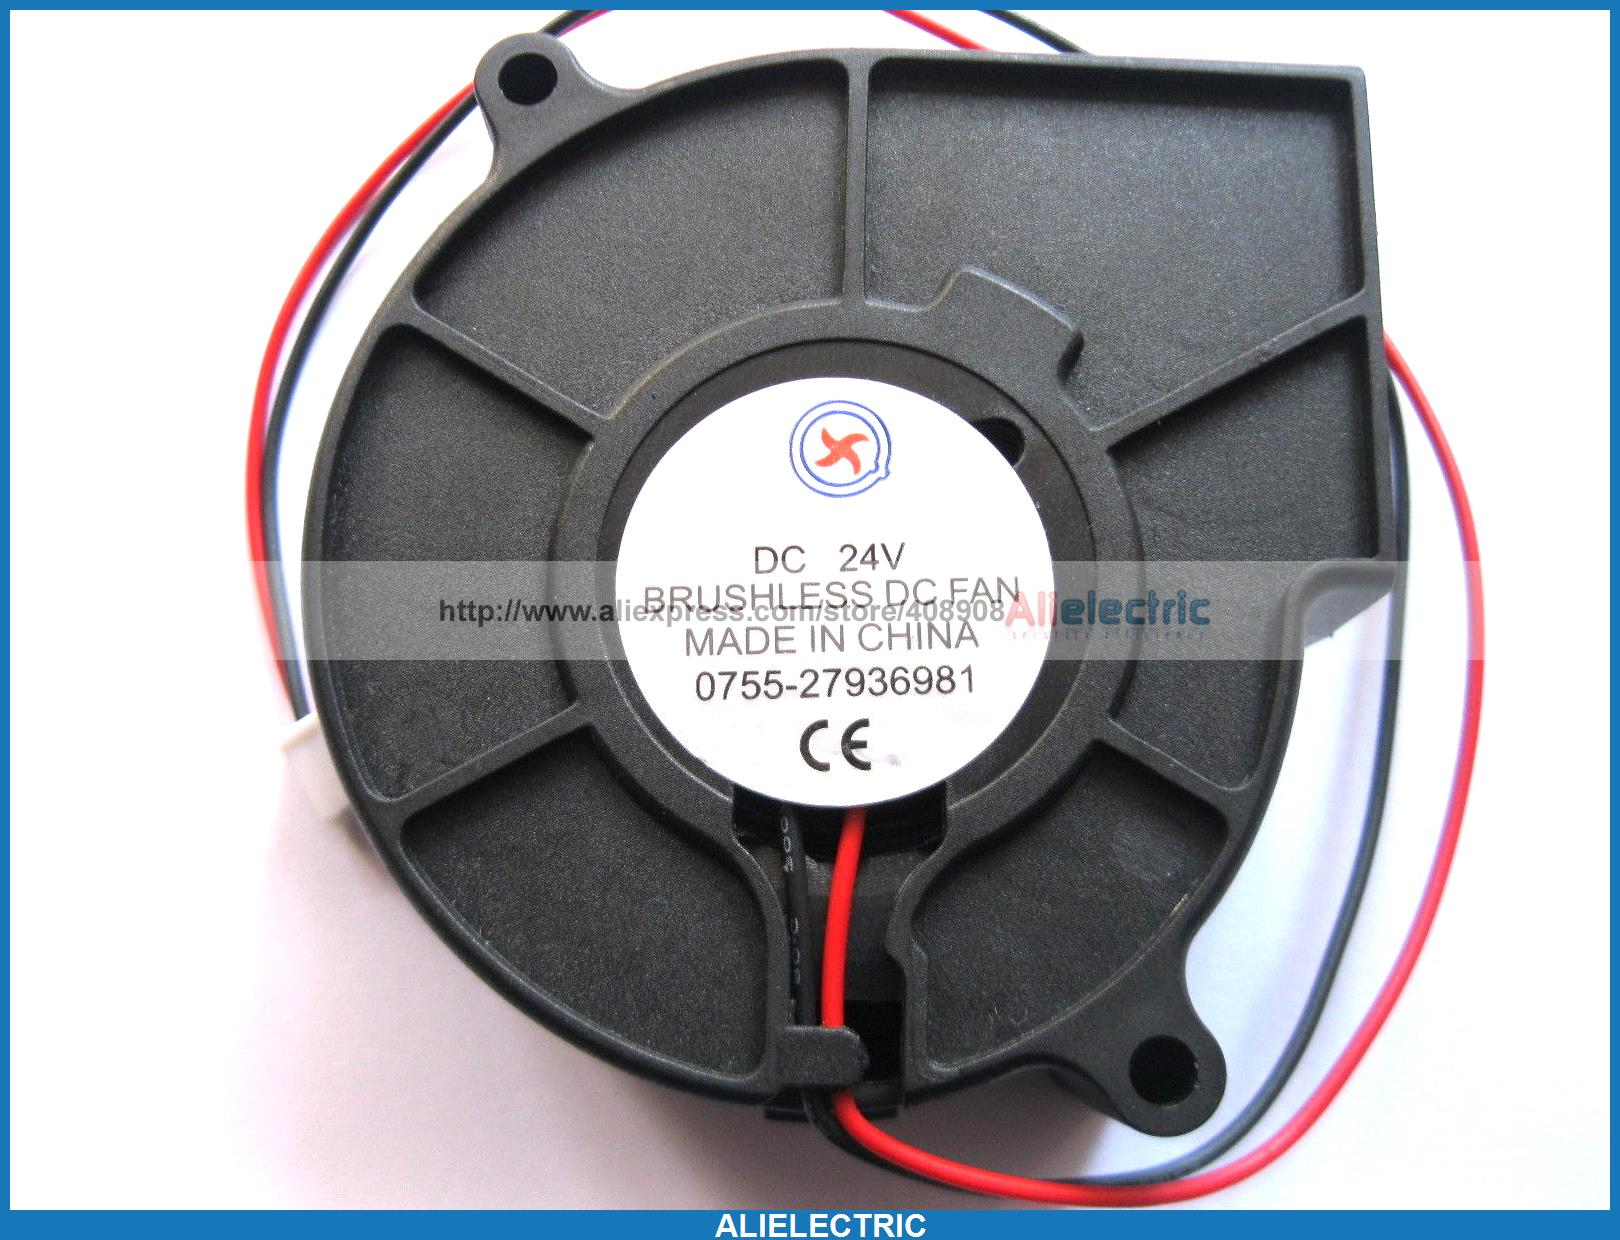 цена 1 Pcs Brushless DC Cooling Blower Fan 7530B 24V 75x30mm